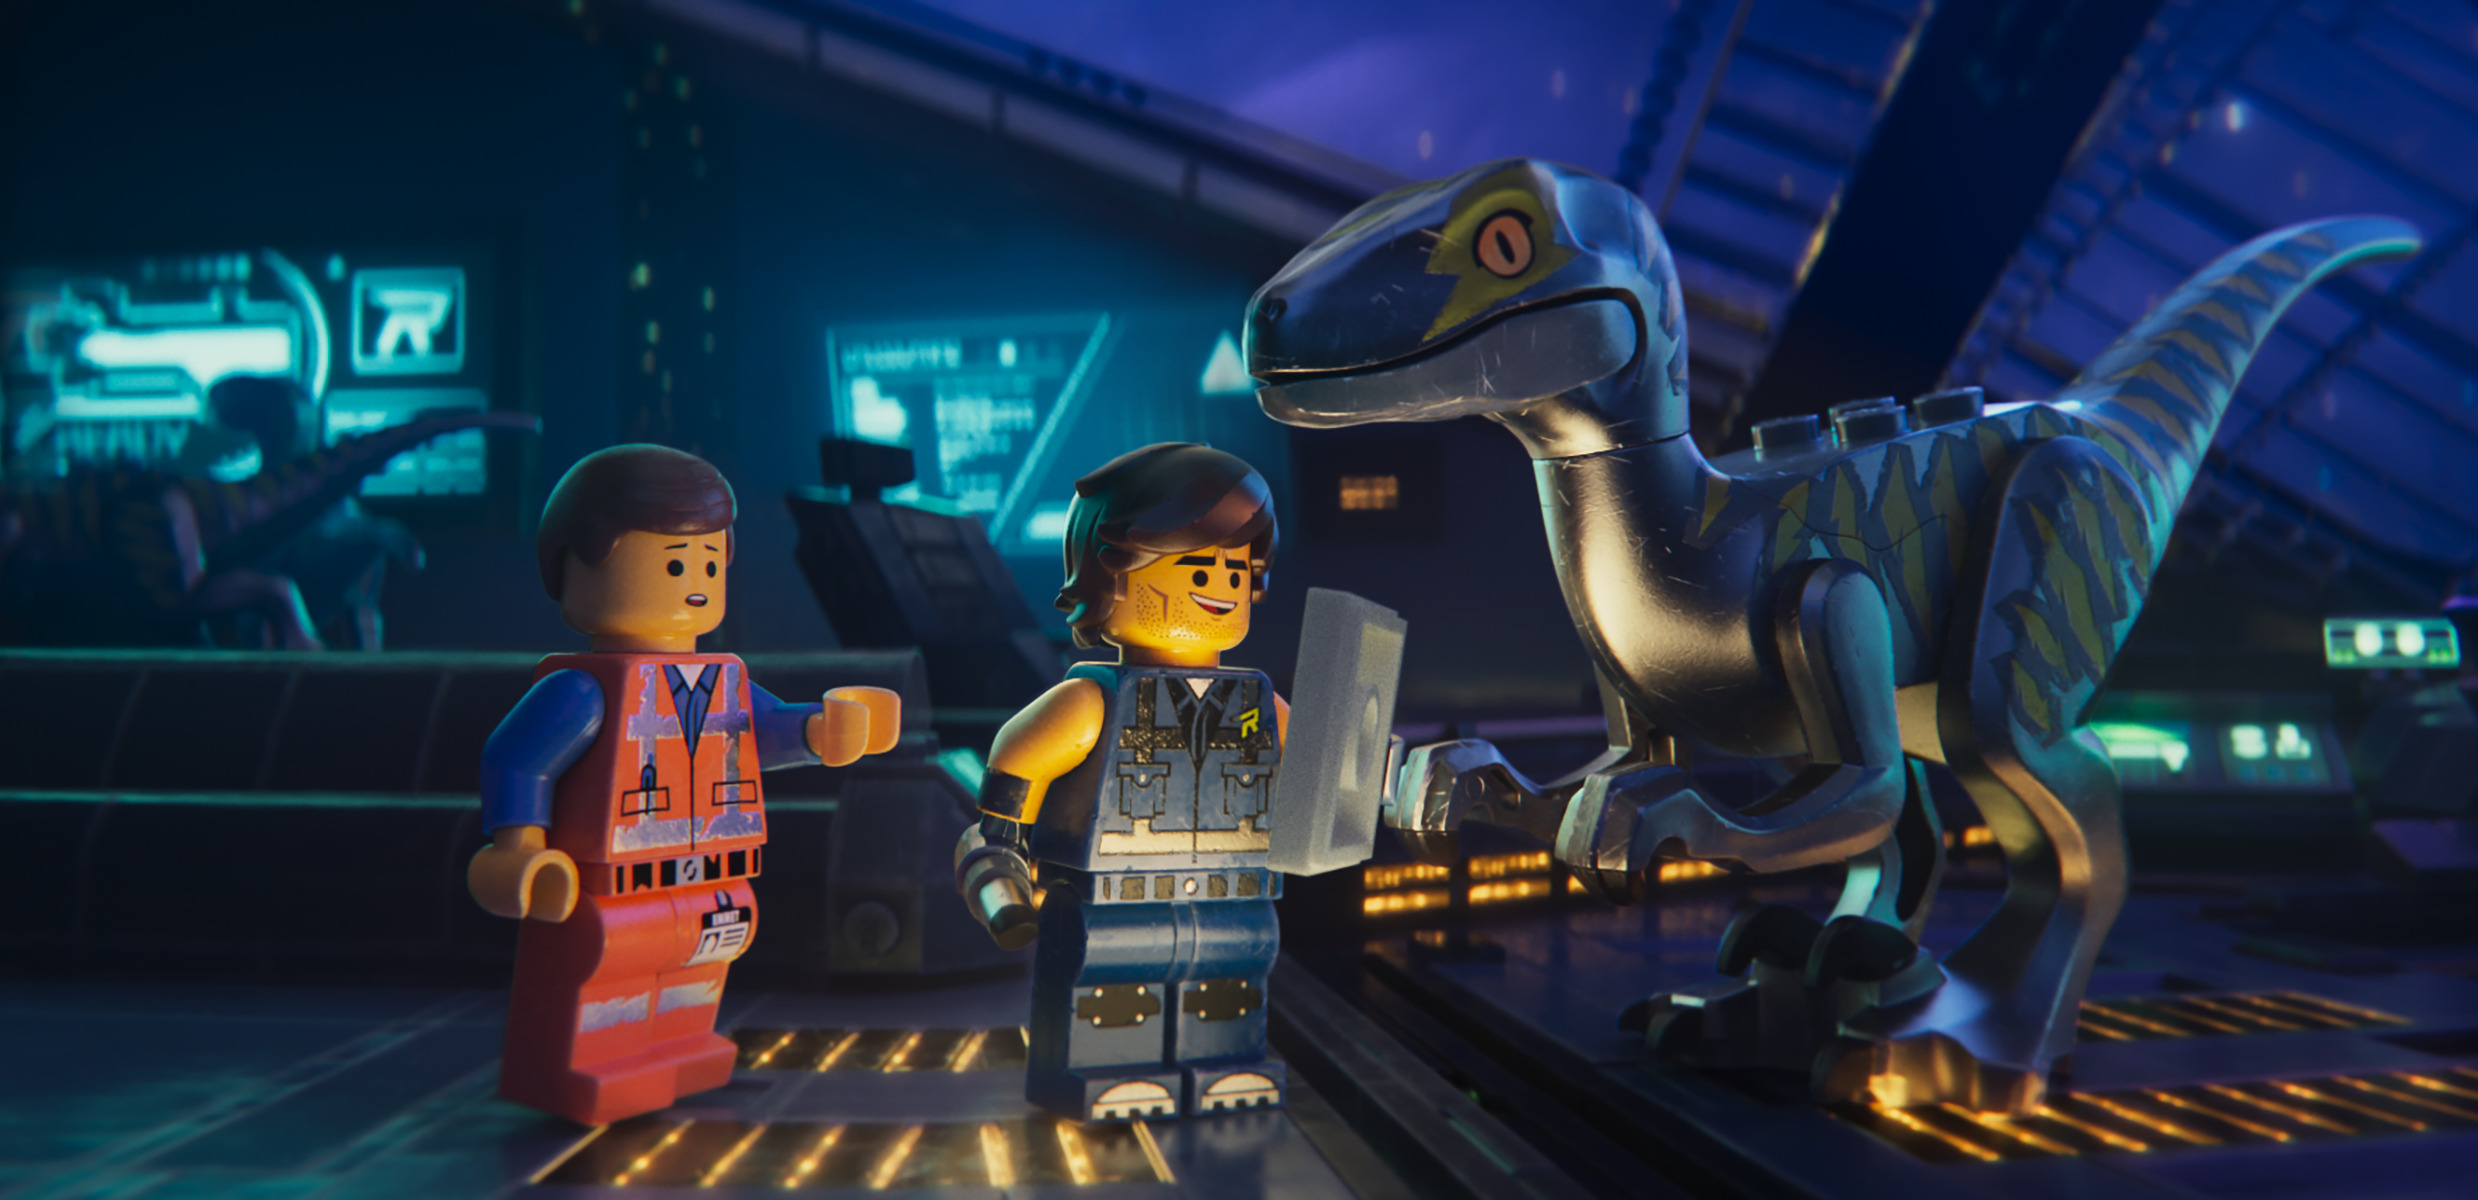 Emmet meets Rex Dangervest (both voiced by Chris Pratt) and one of Rex's trained raptors in The Lego Movie 2 (2019)